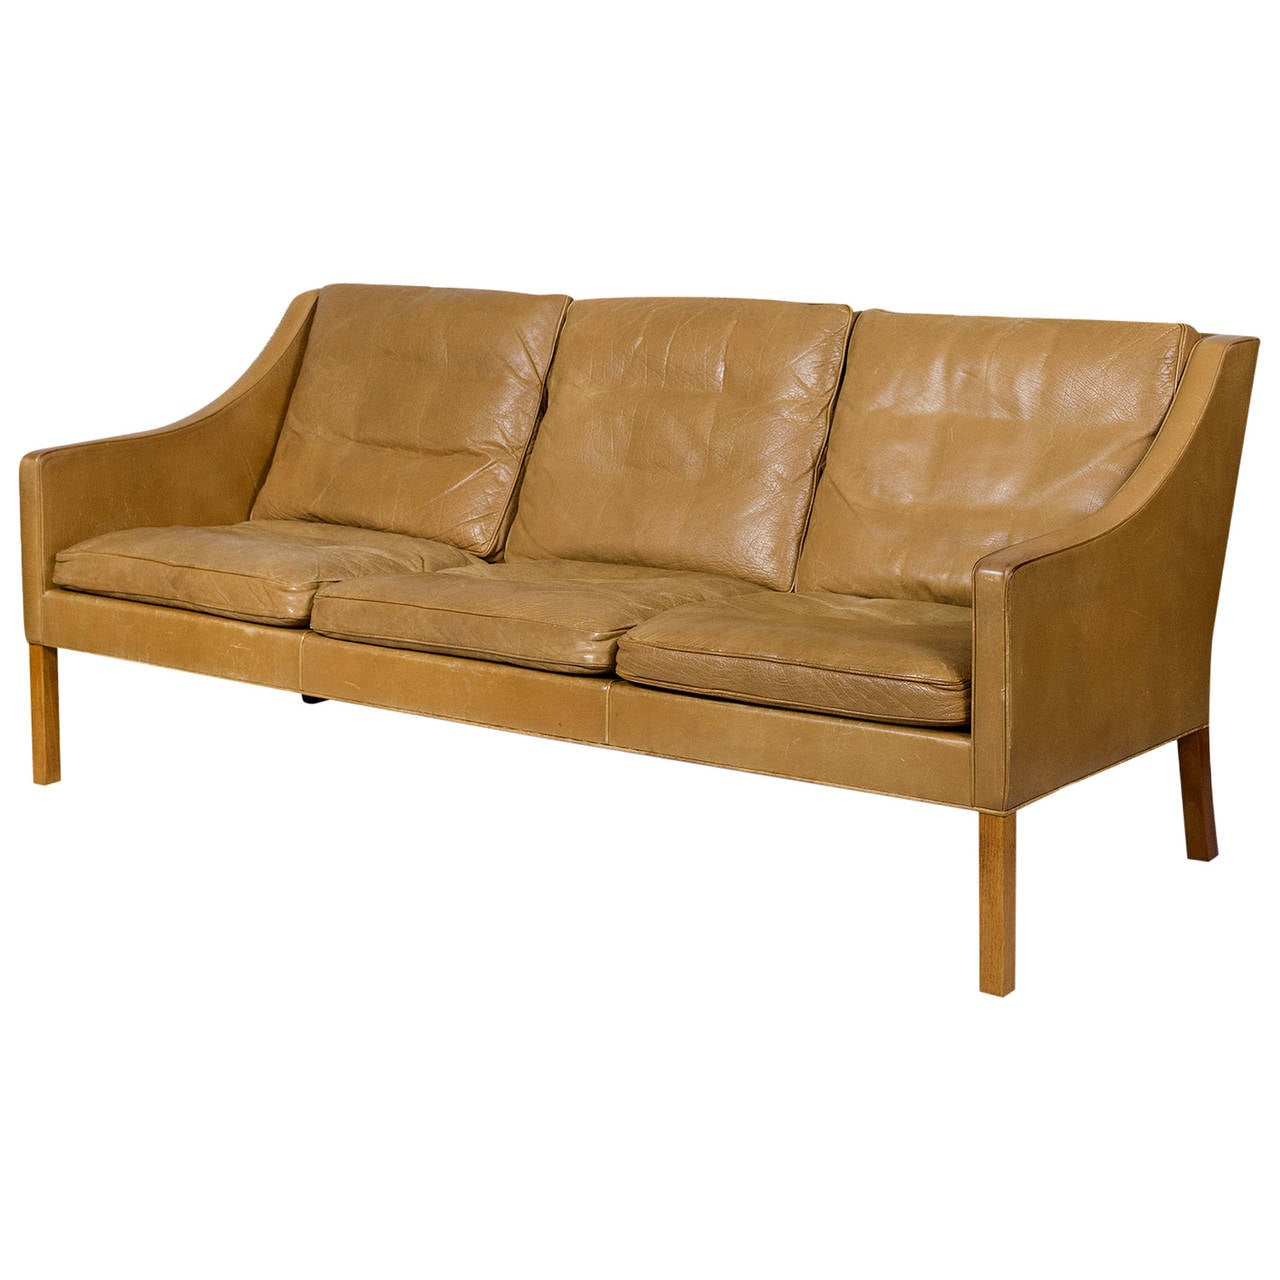 borge mogensen sofa model 2209 chaise lounge with storage three seat leather for sale at 1stdibs